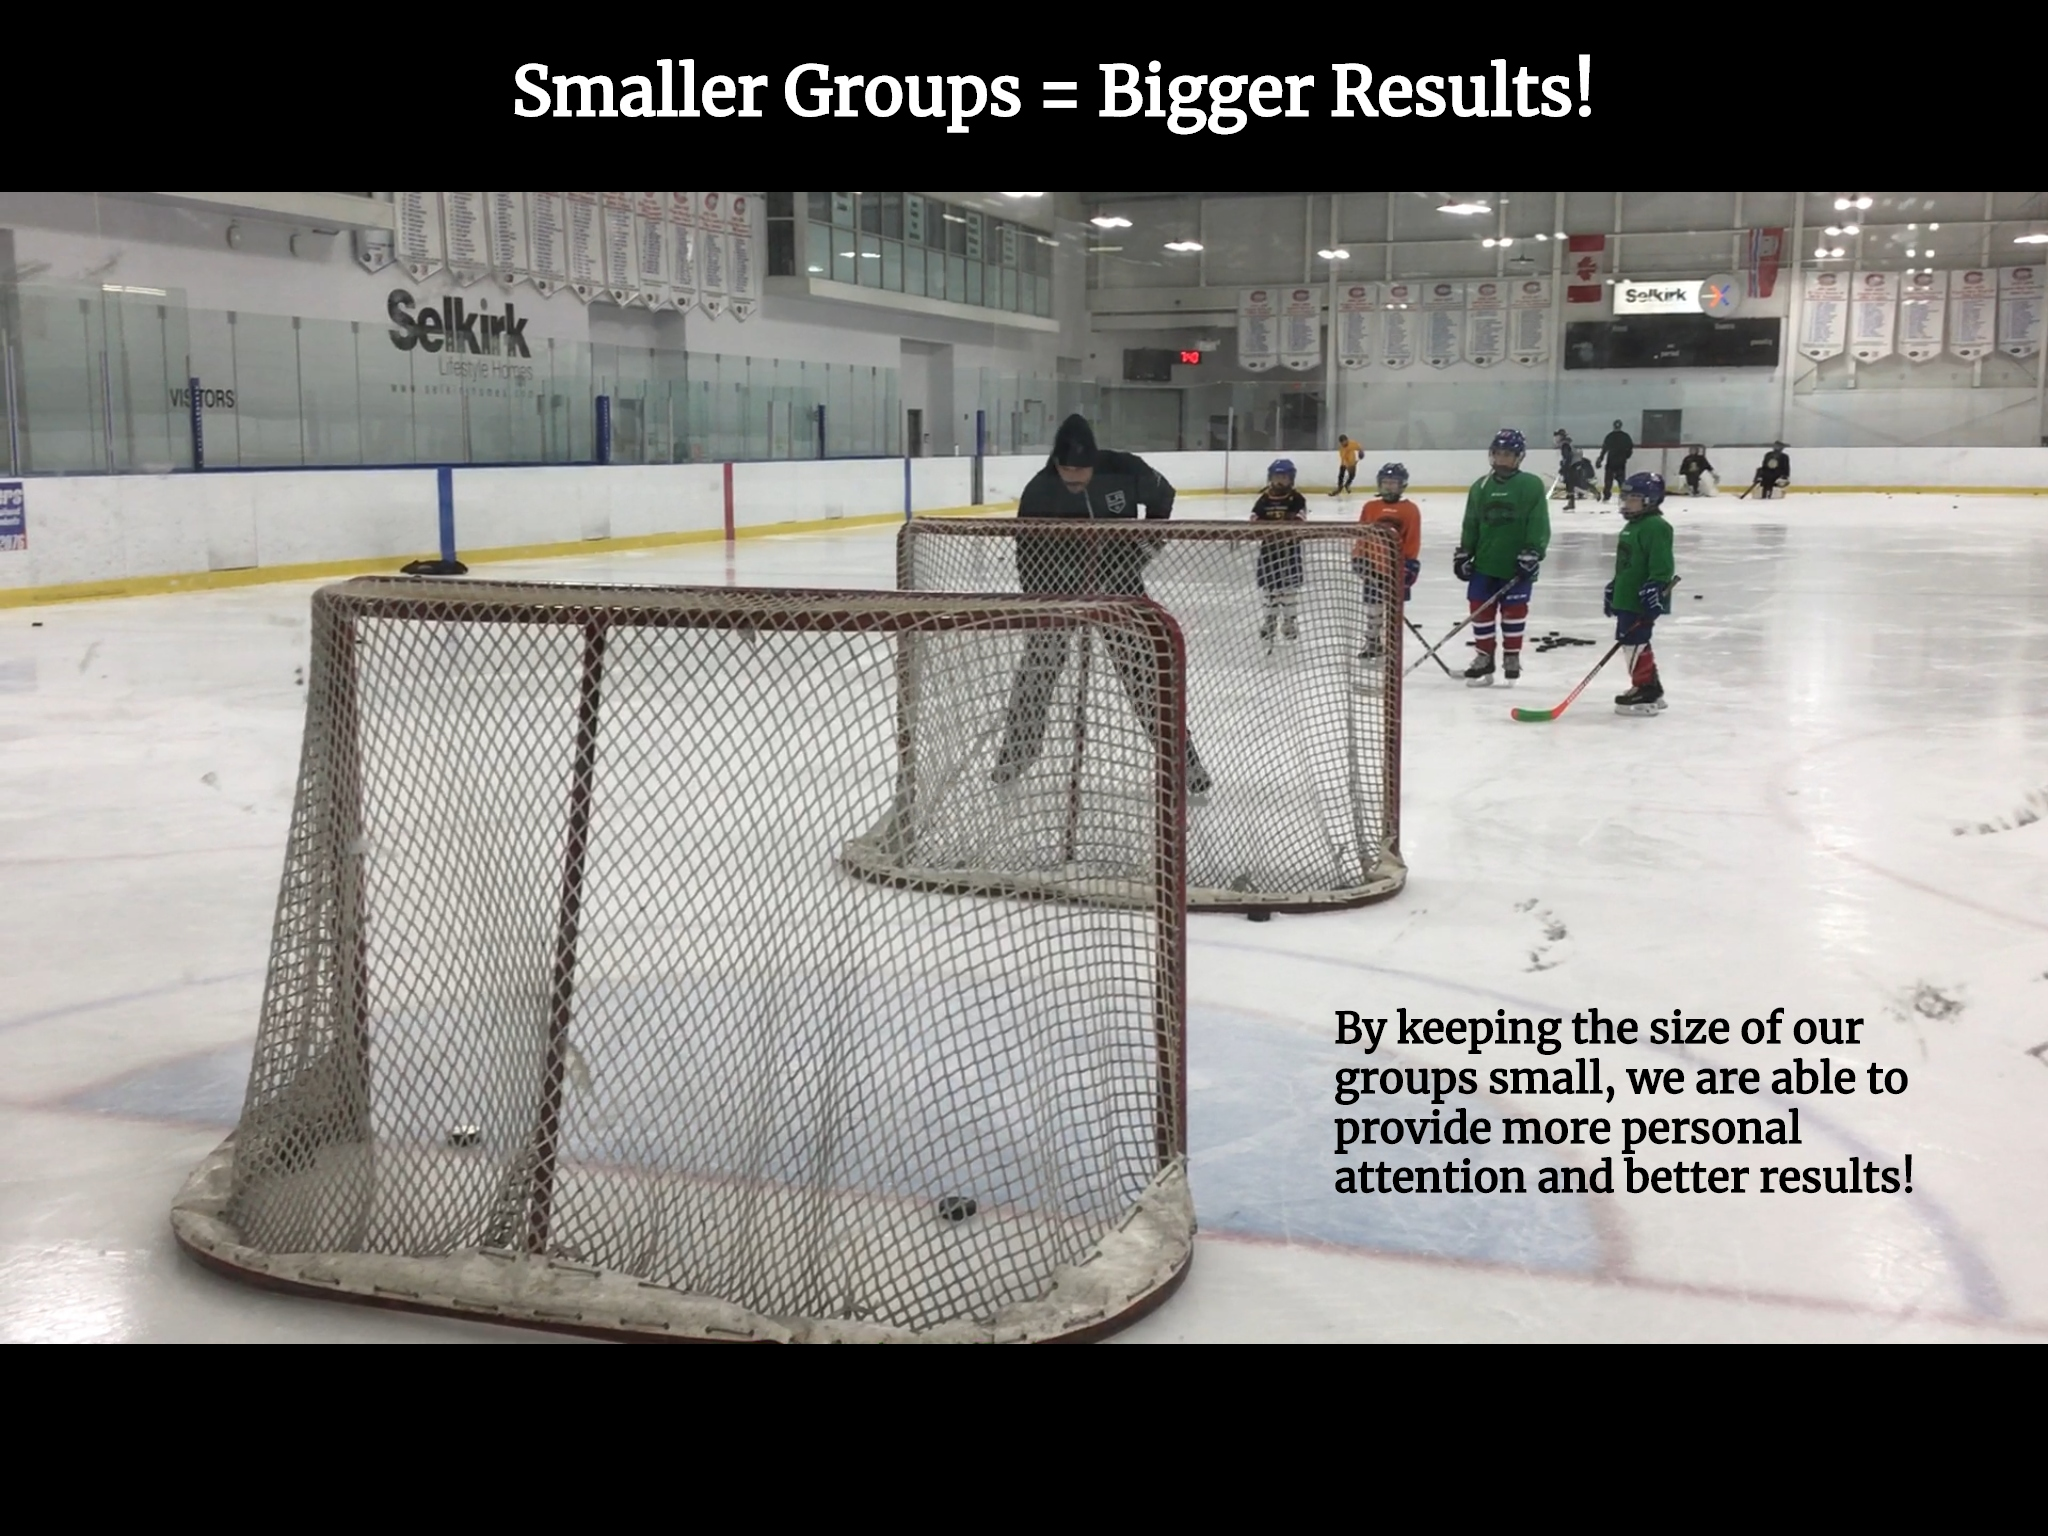 Smaller Groups Equals Bigger Results